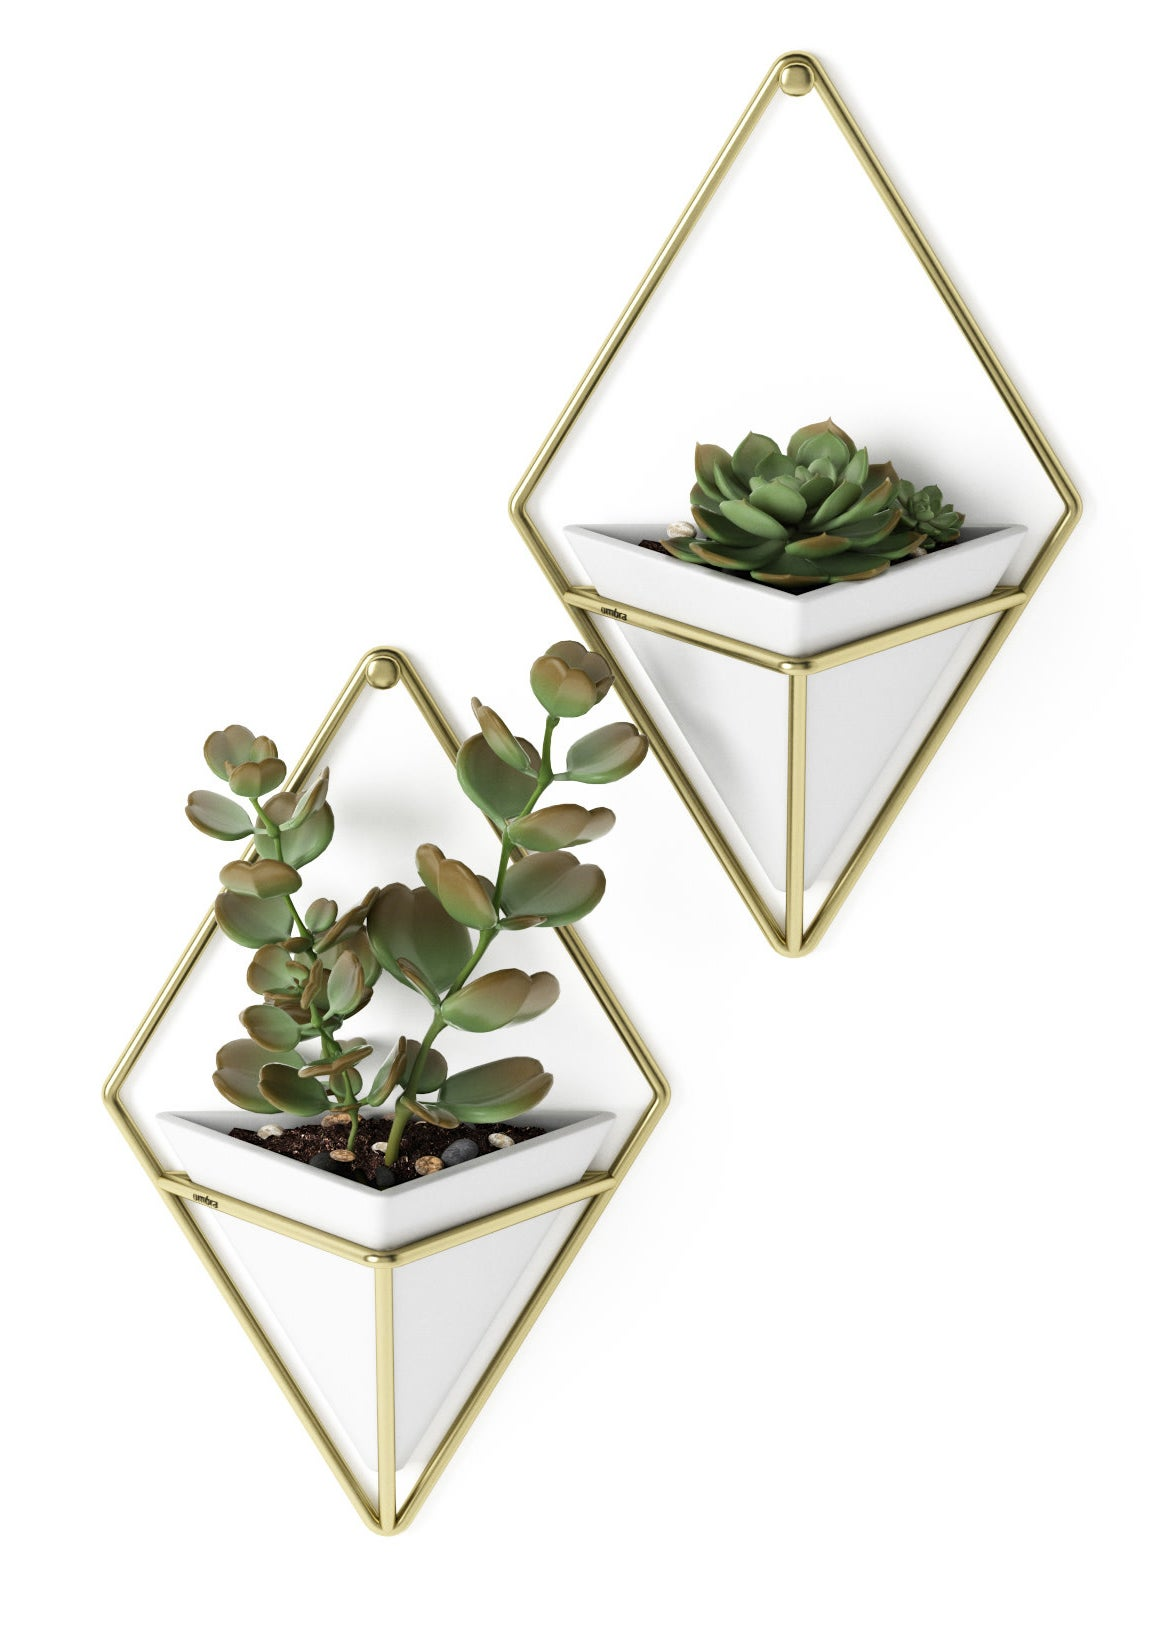 white inverted pyramid pots with gold diamond shaped hanging frame, holding succulents